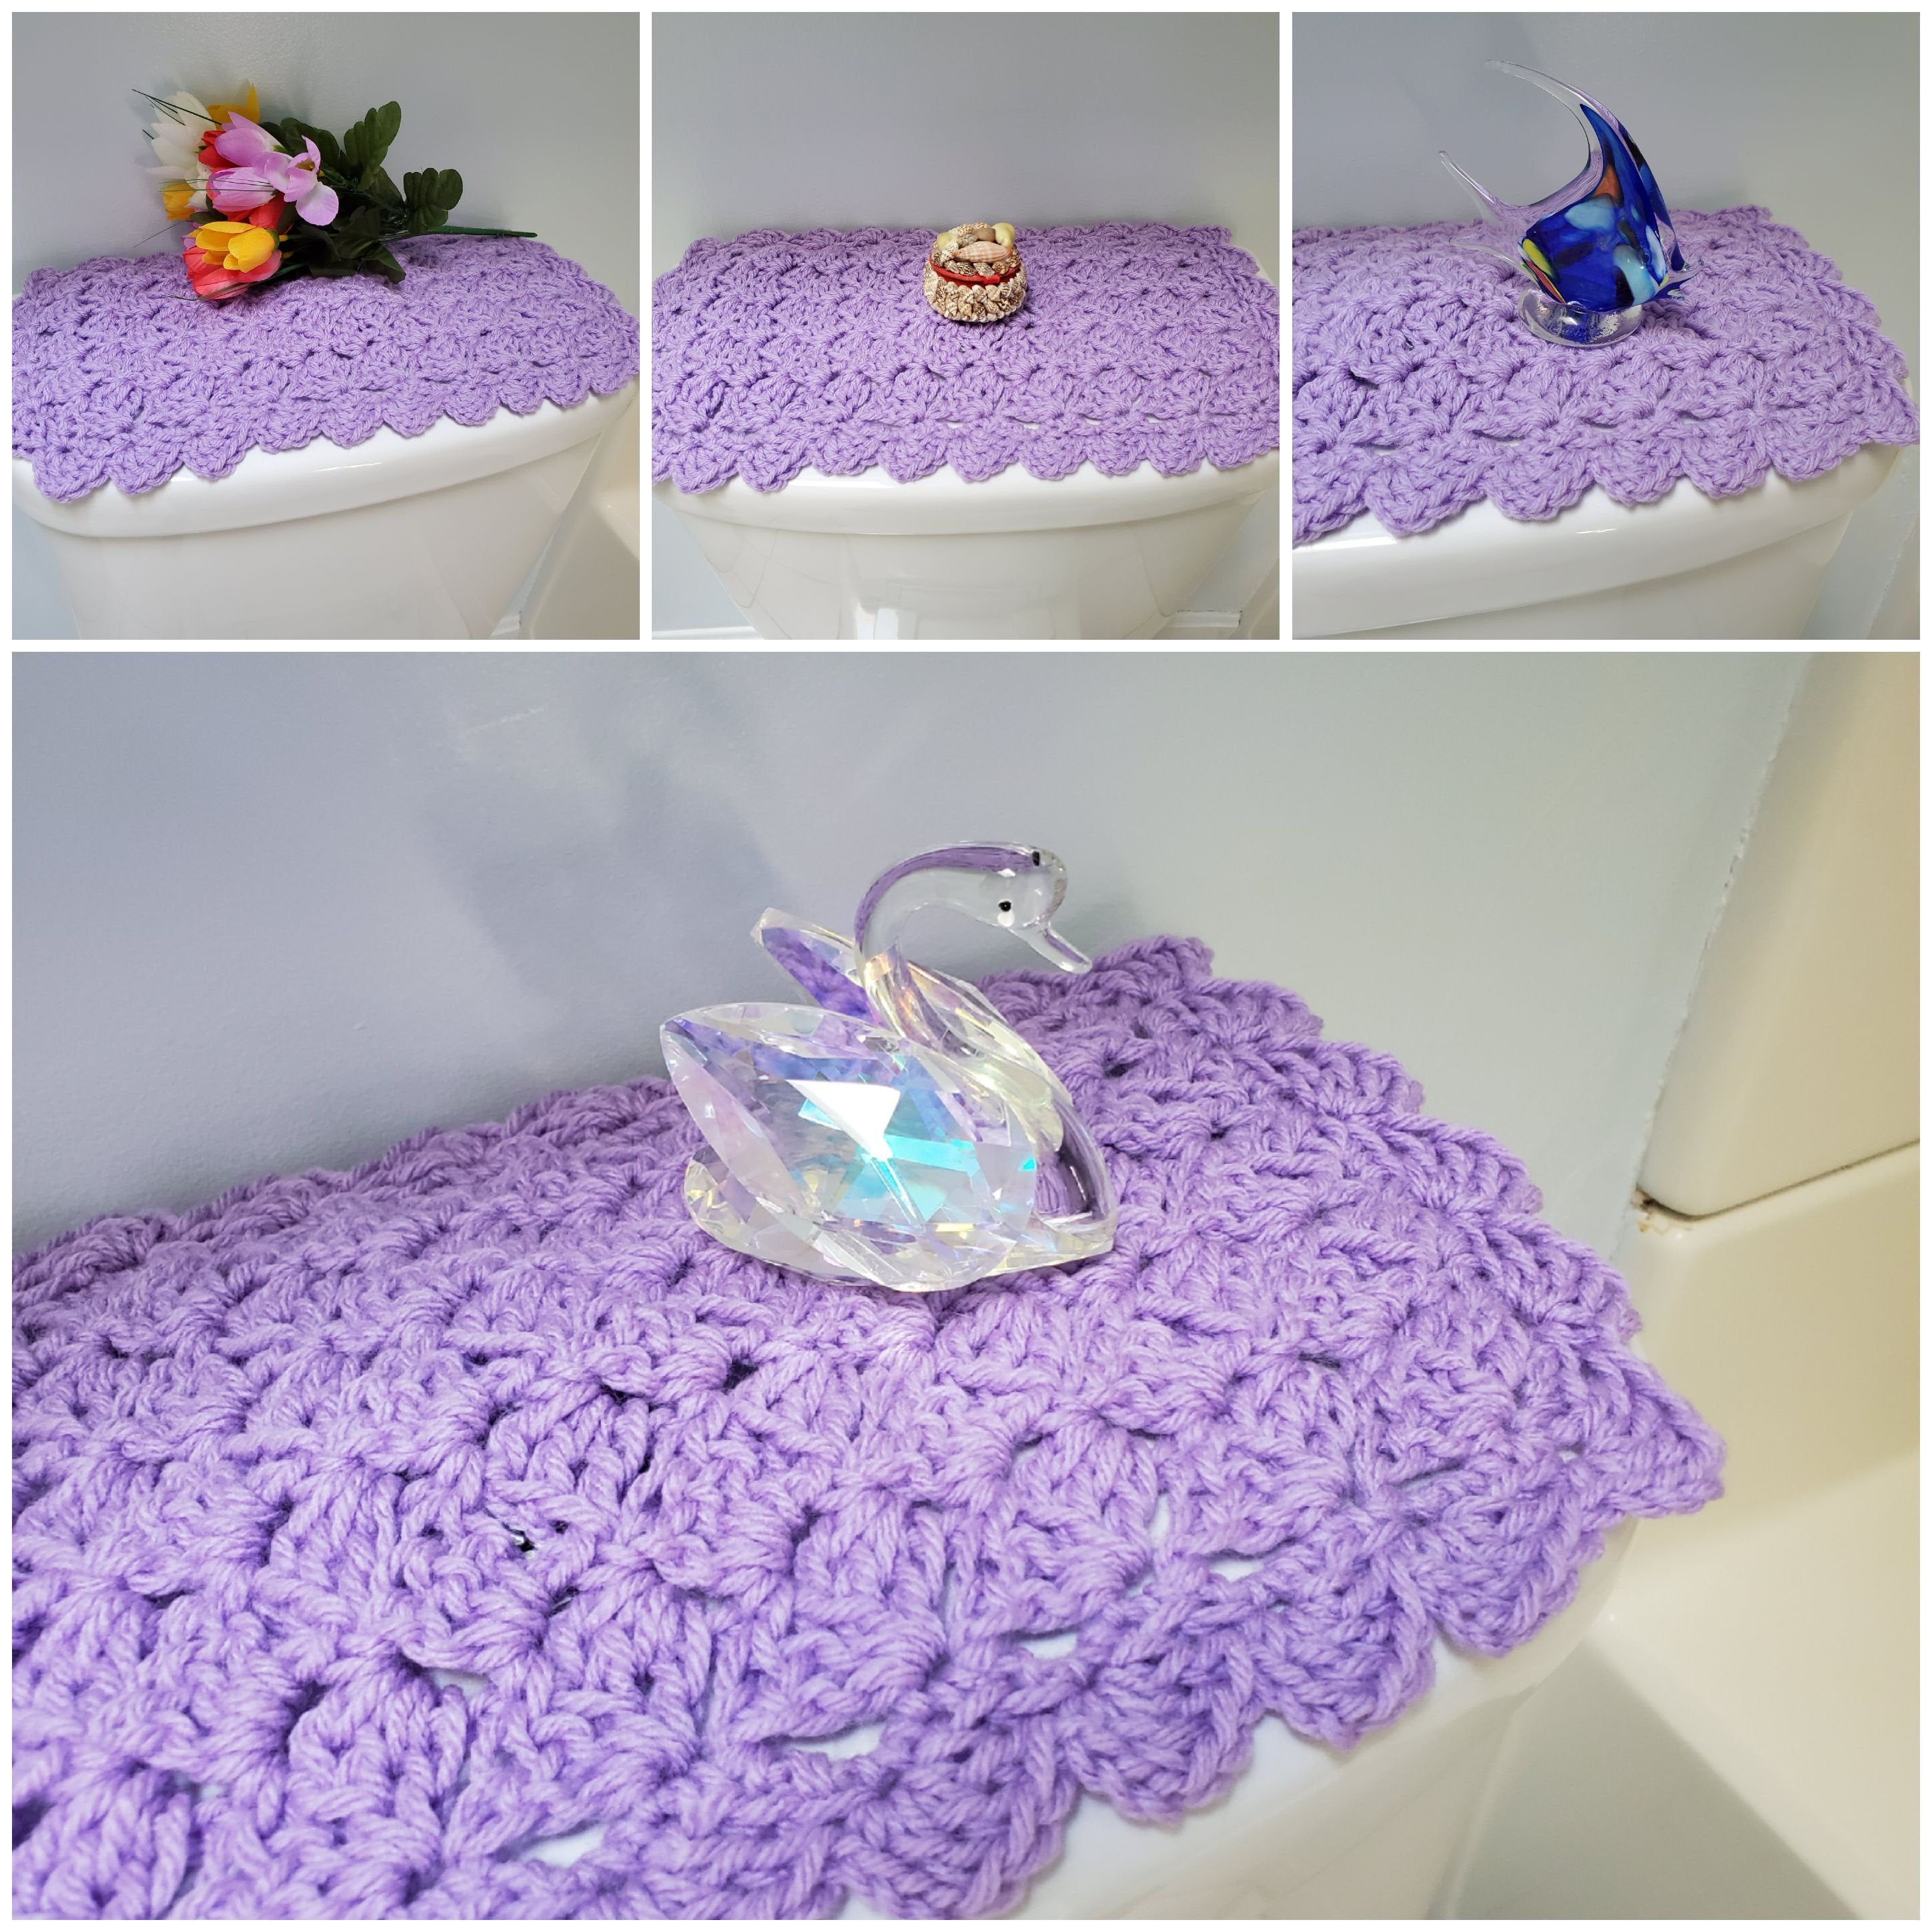 Toilet Tank Topper Crochet Toilet Tank Topper Bathroom Decor Lilac Ttt1j Crafts To Make And Sell Crafts To Make Yarn Bombing